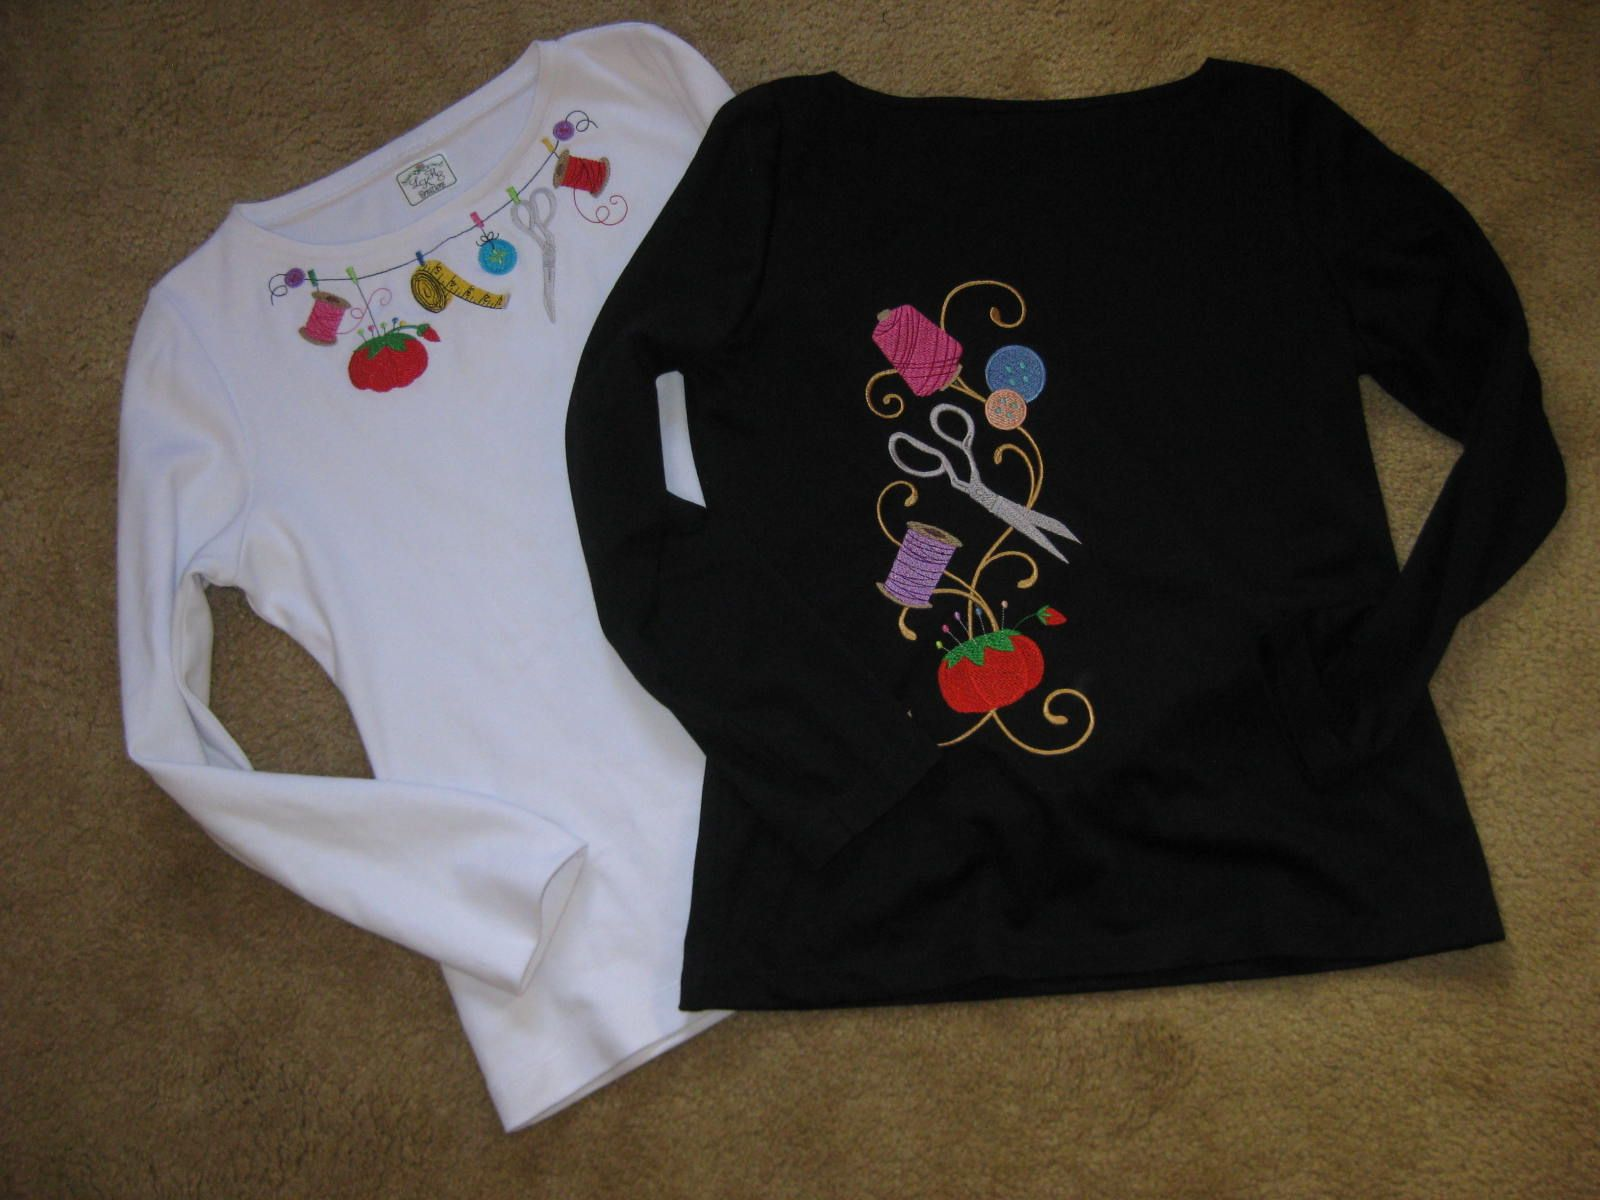 A couple tee shirts I made and embroidered for the Sewing & Stitchery Expo in Puyallup.